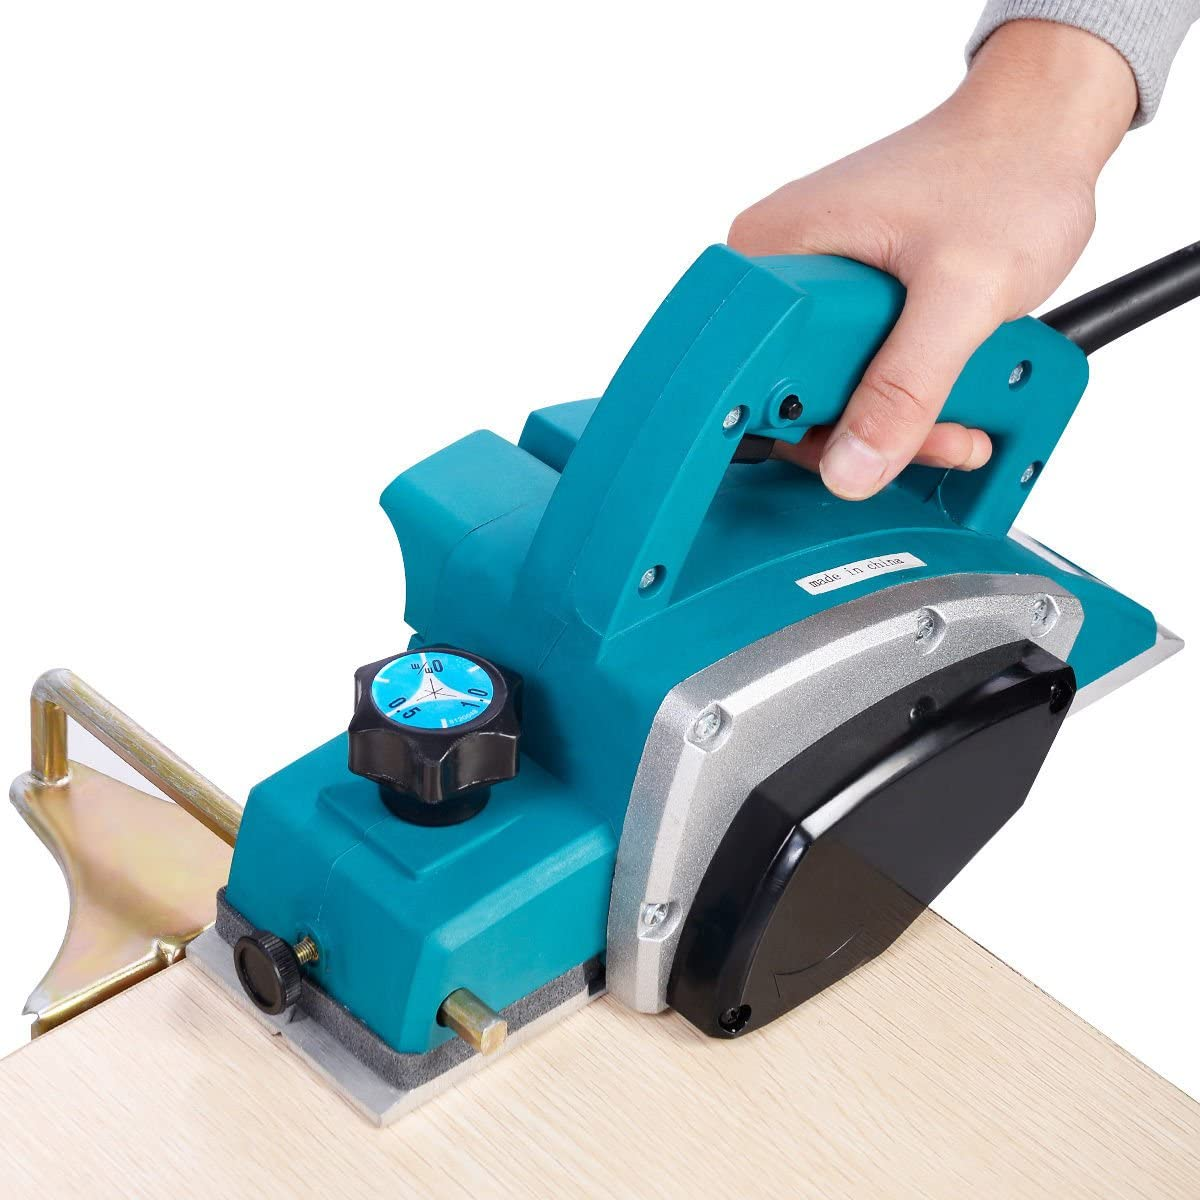 Goplus SU-ET1123-110V Electric Hand Planers product image 3